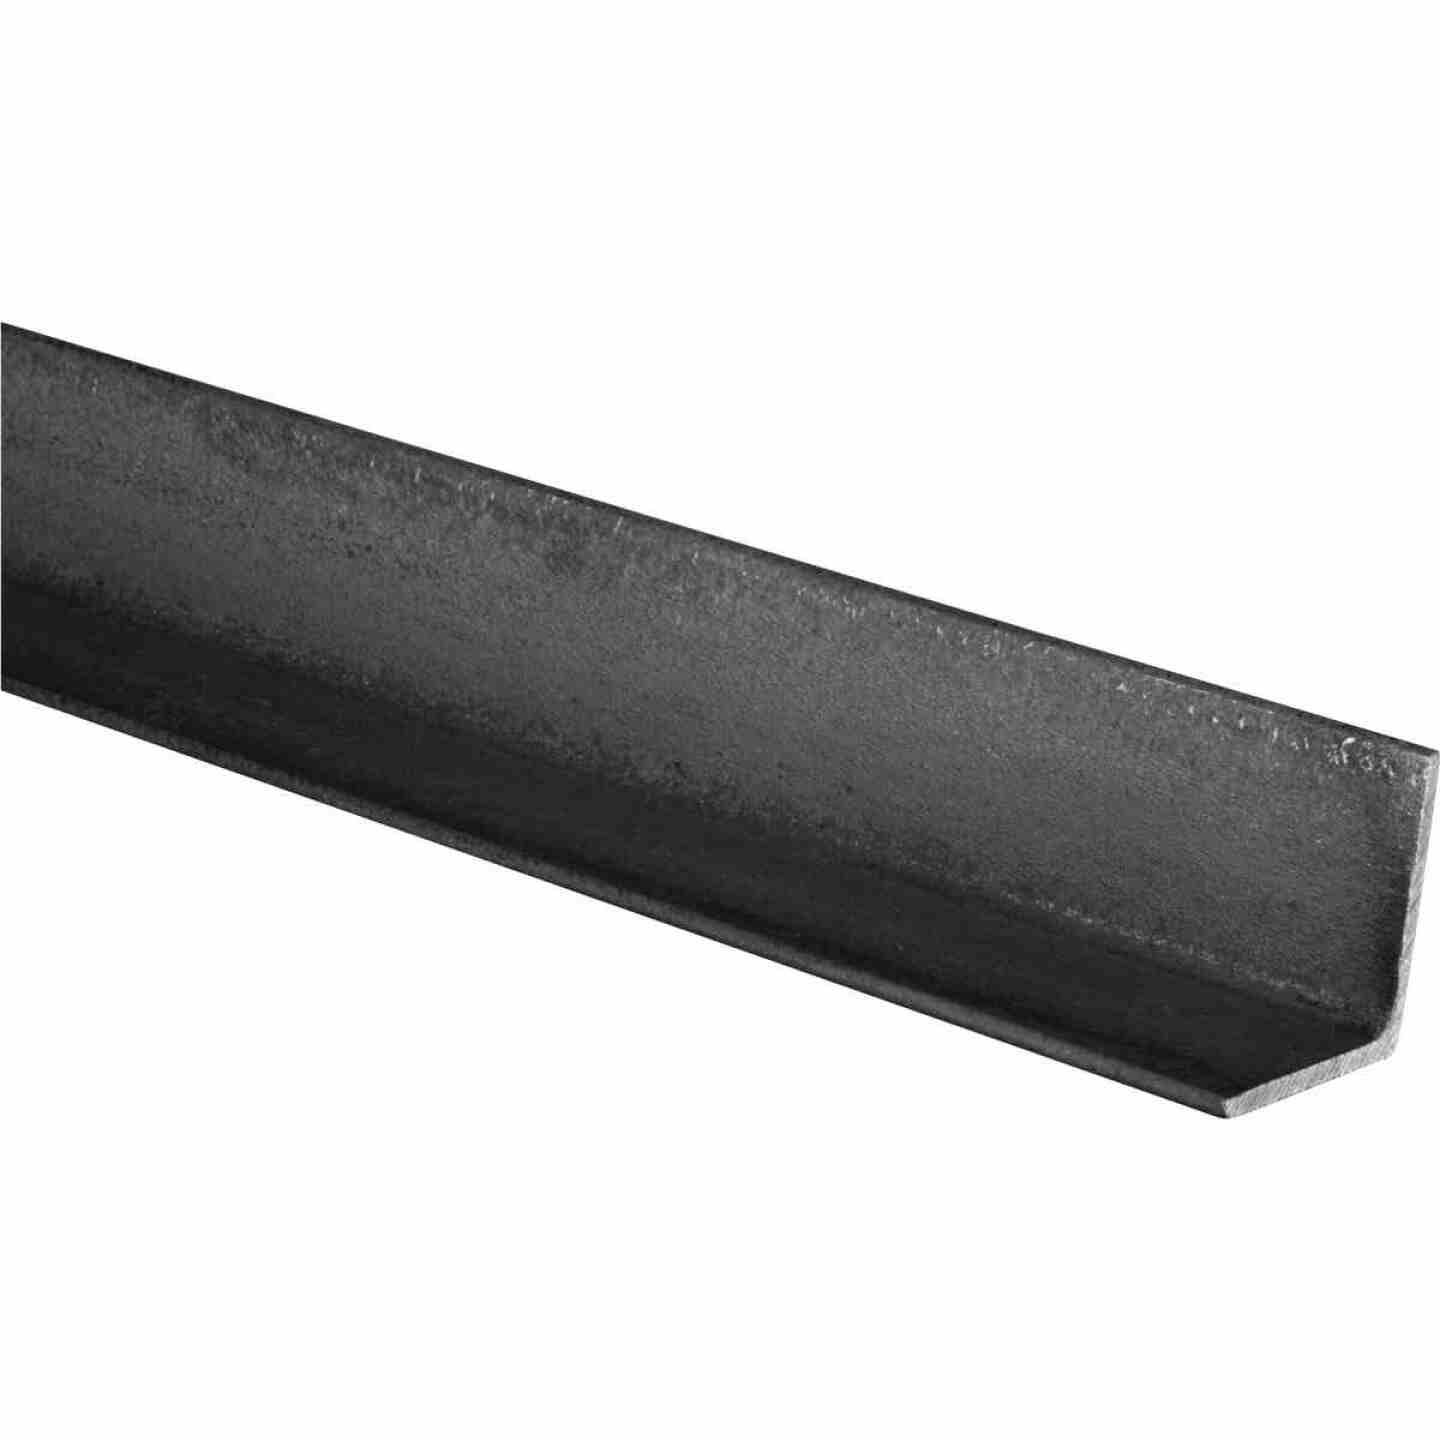 HILLMAN Steelworks Plain 2 In. x 4 Ft., 1/8 In. Weldable Solid Angle Image 1